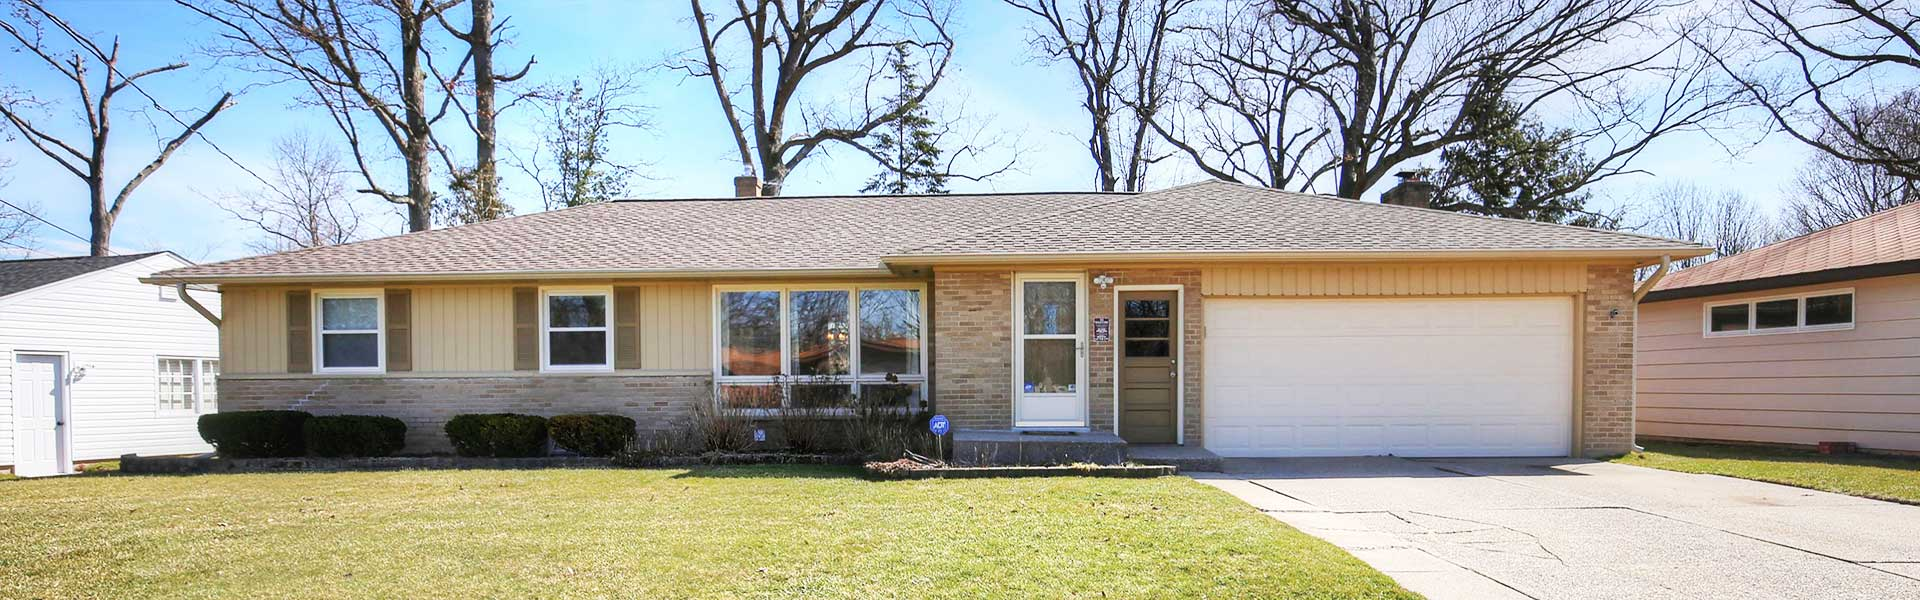 home-inspection-selling-home-pre-listing-inspection-rockford-mi